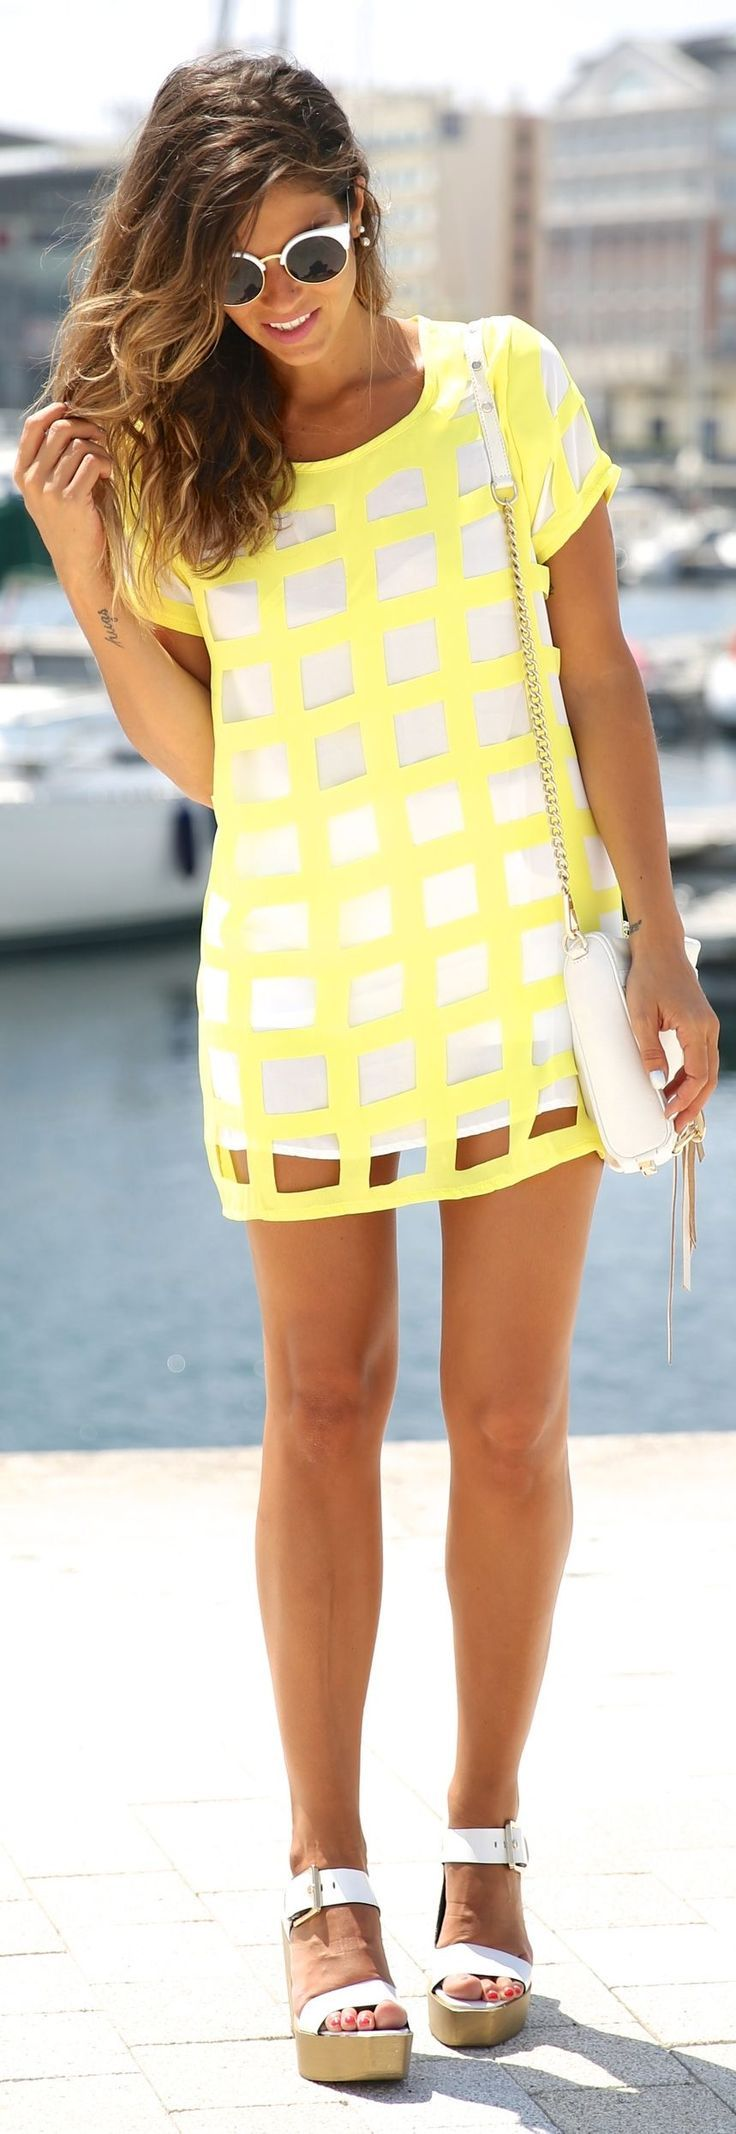 Rock Out Spring 2015 Trends | Yellow Lattice Dress